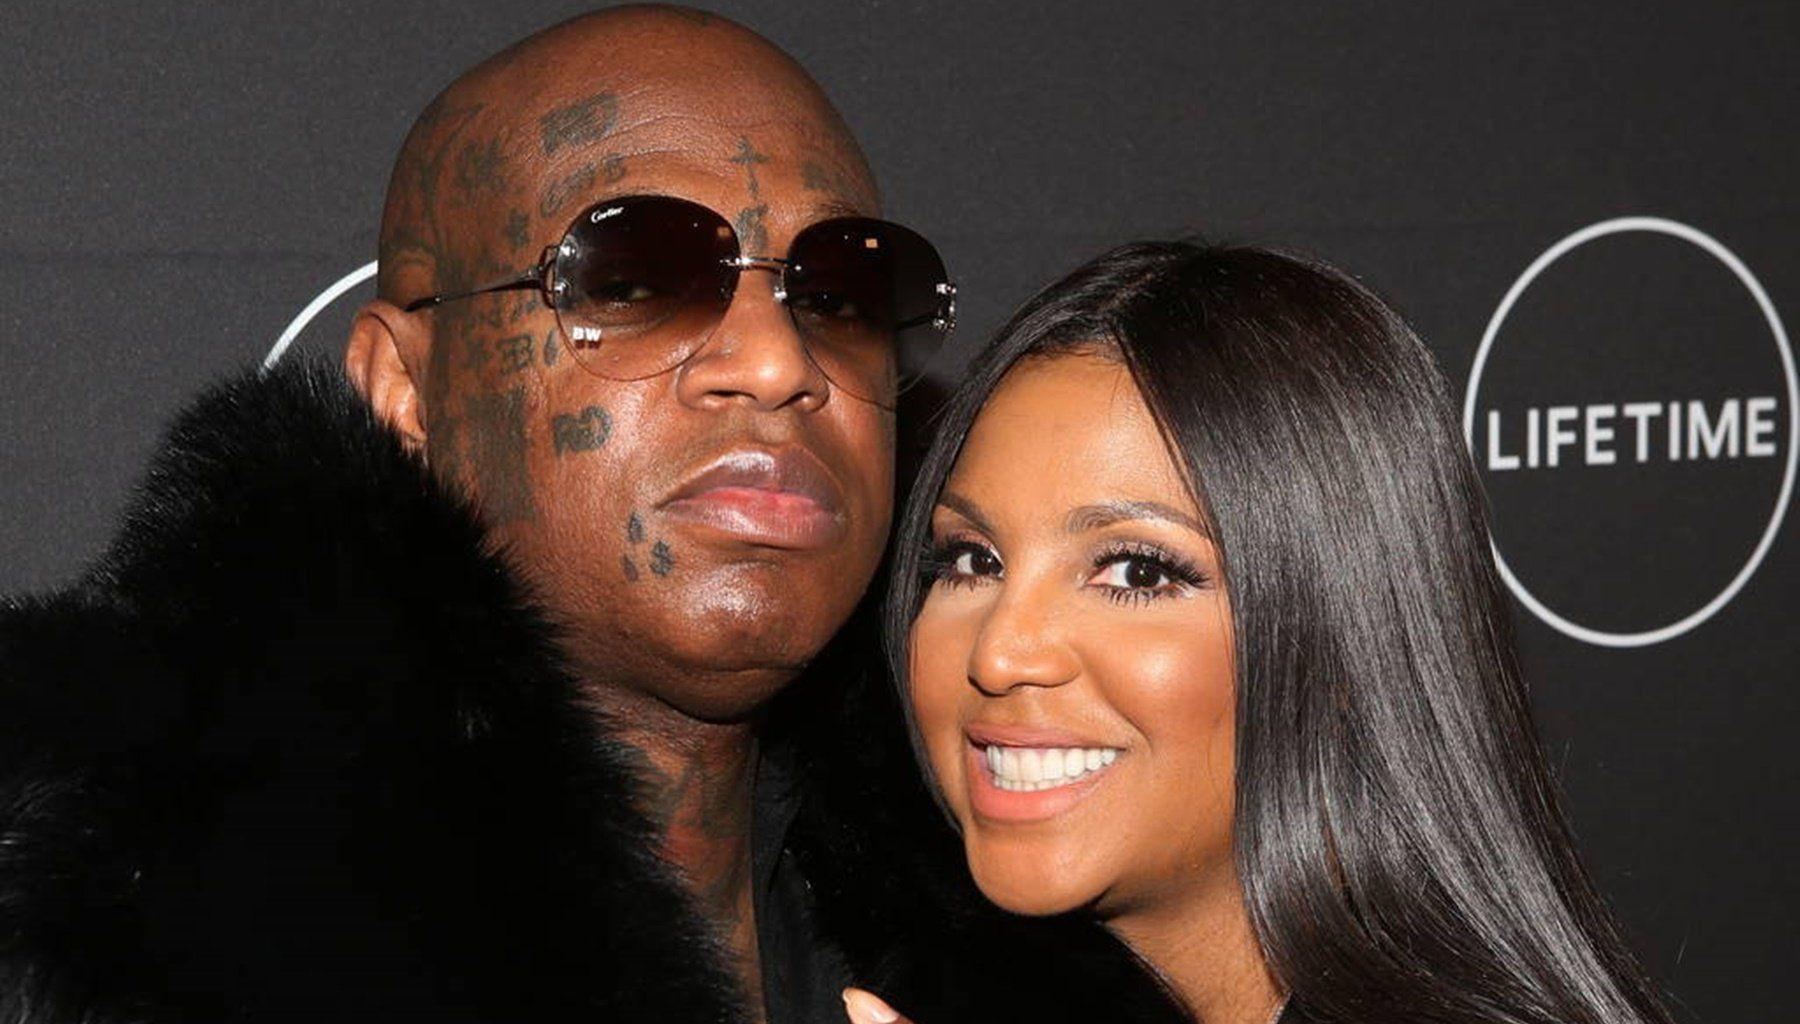 Toni Braxton And Birdman May Be Expecting A Baby -- Check Out The Rapper's Latest Message!